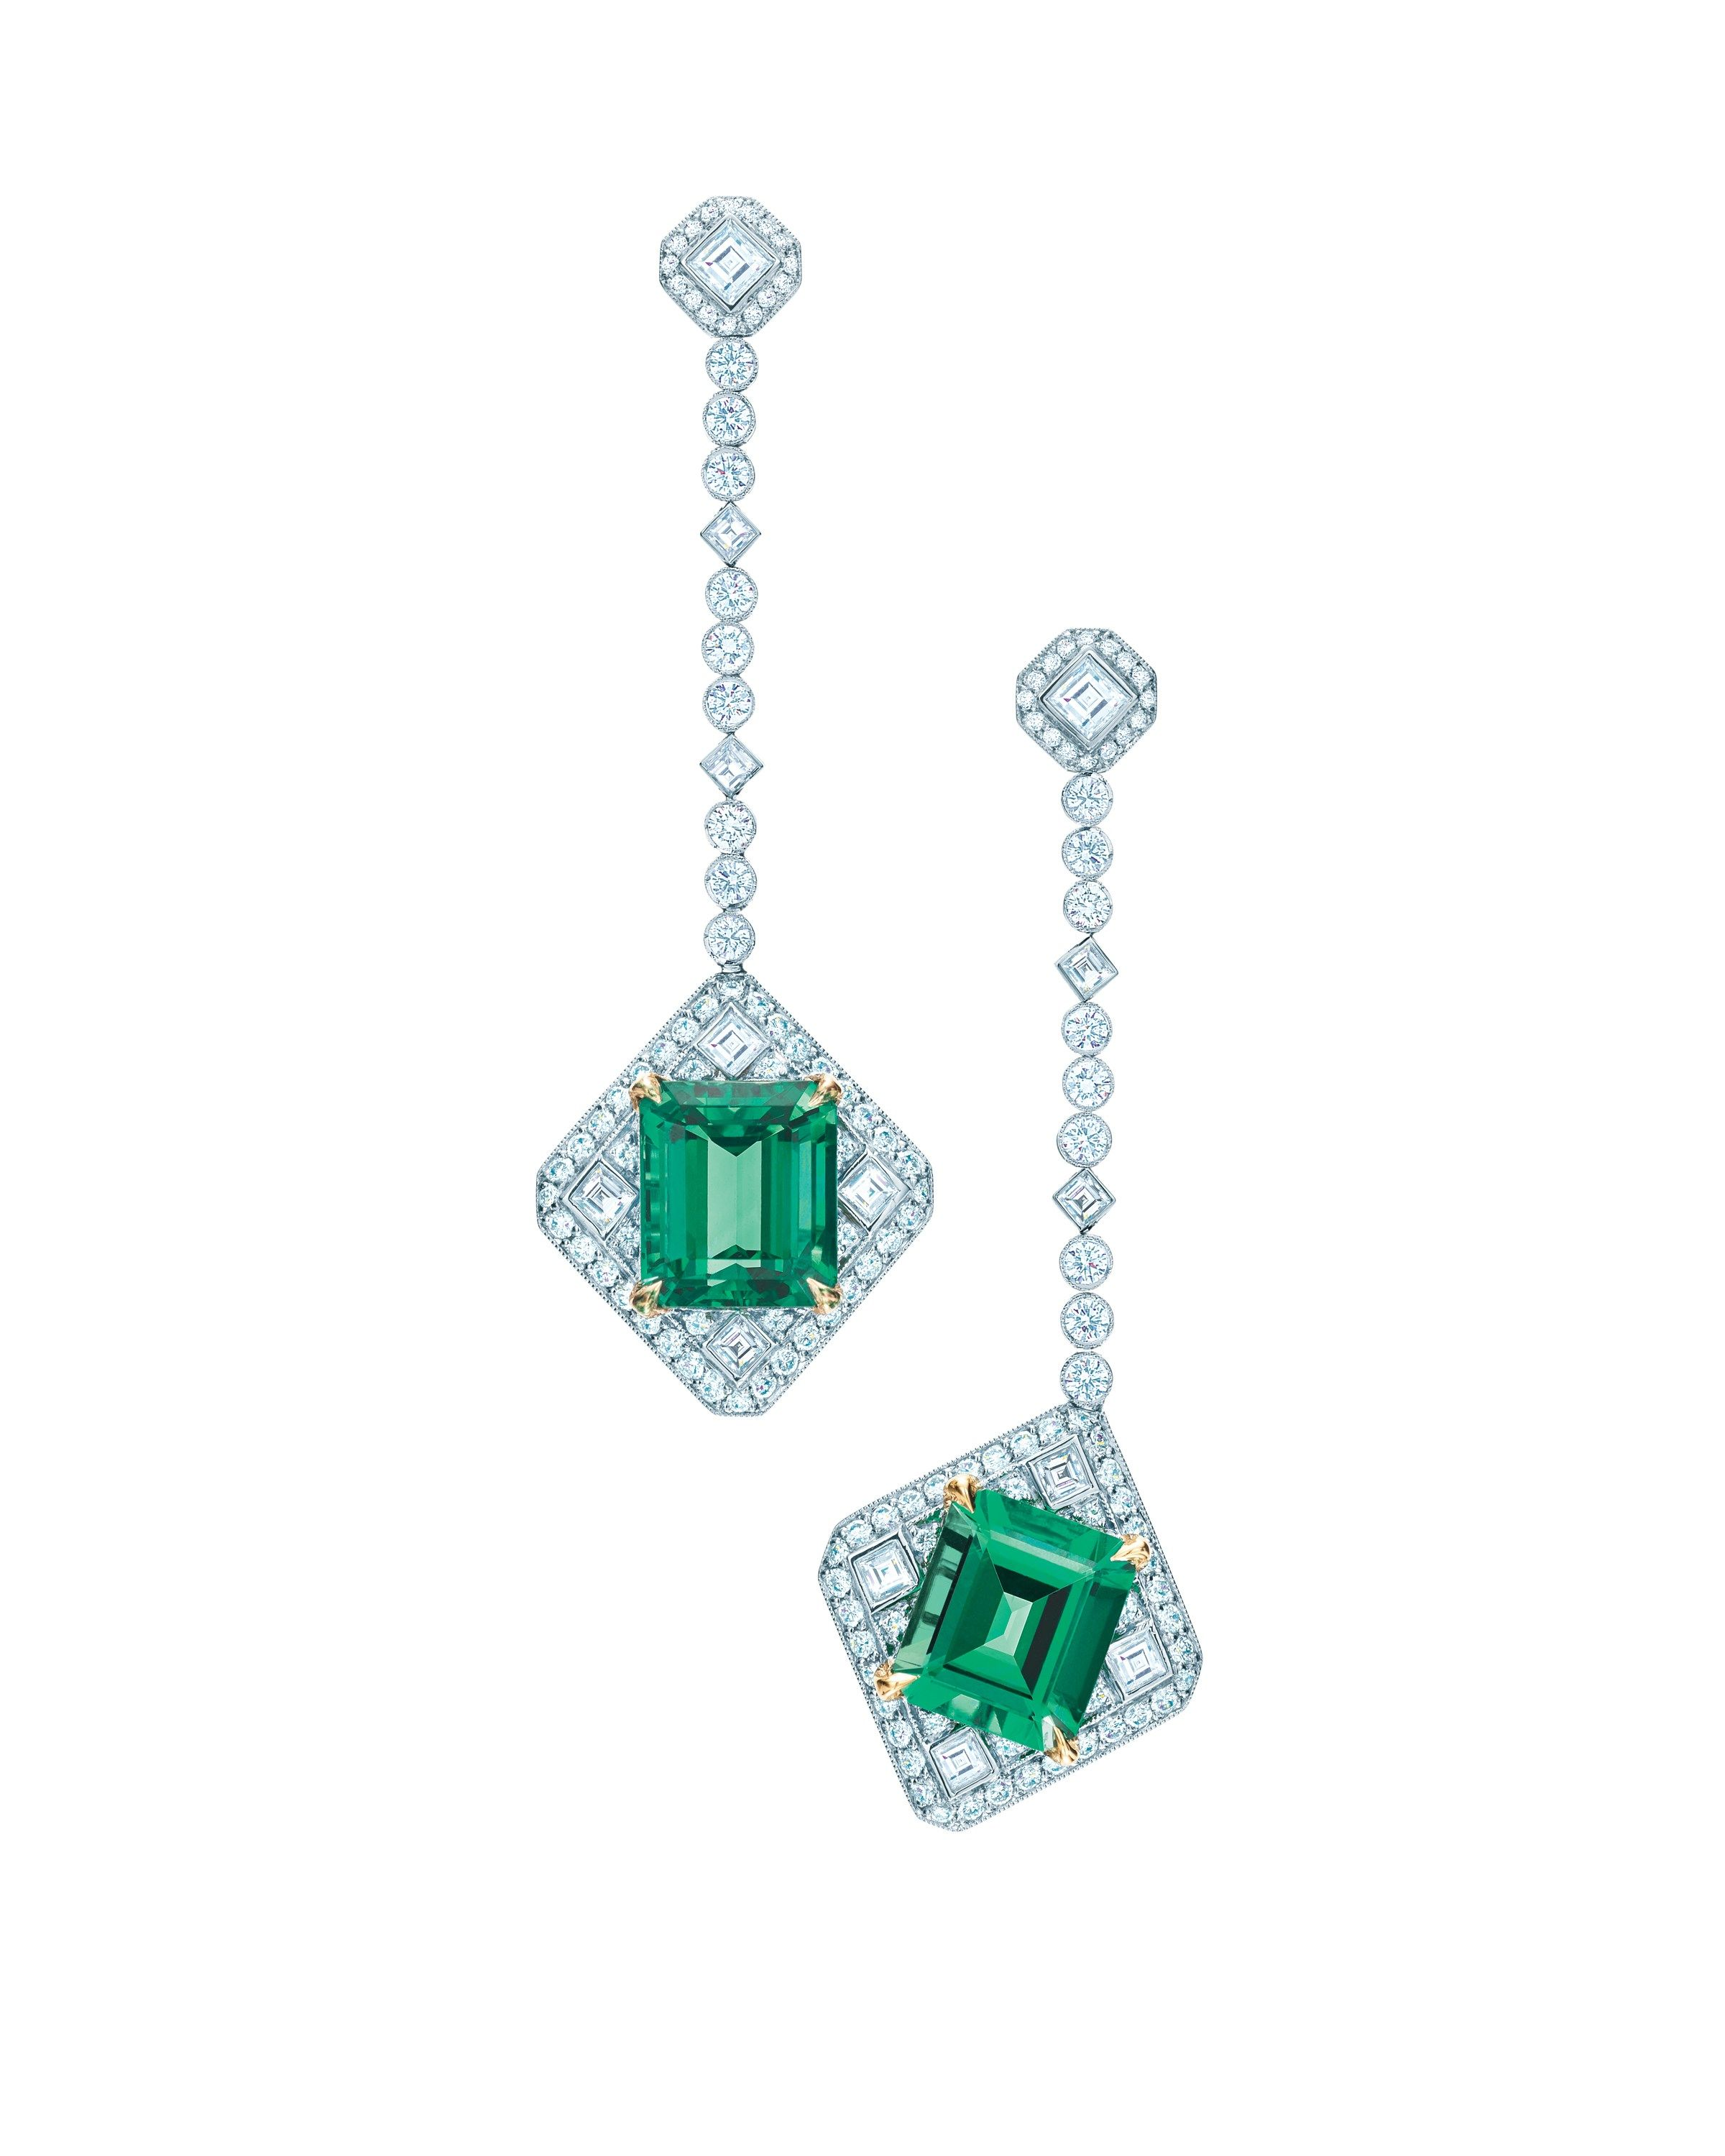 diamond online tiffany christie aquamarine s earrings and chandelier co nyr christies jewels